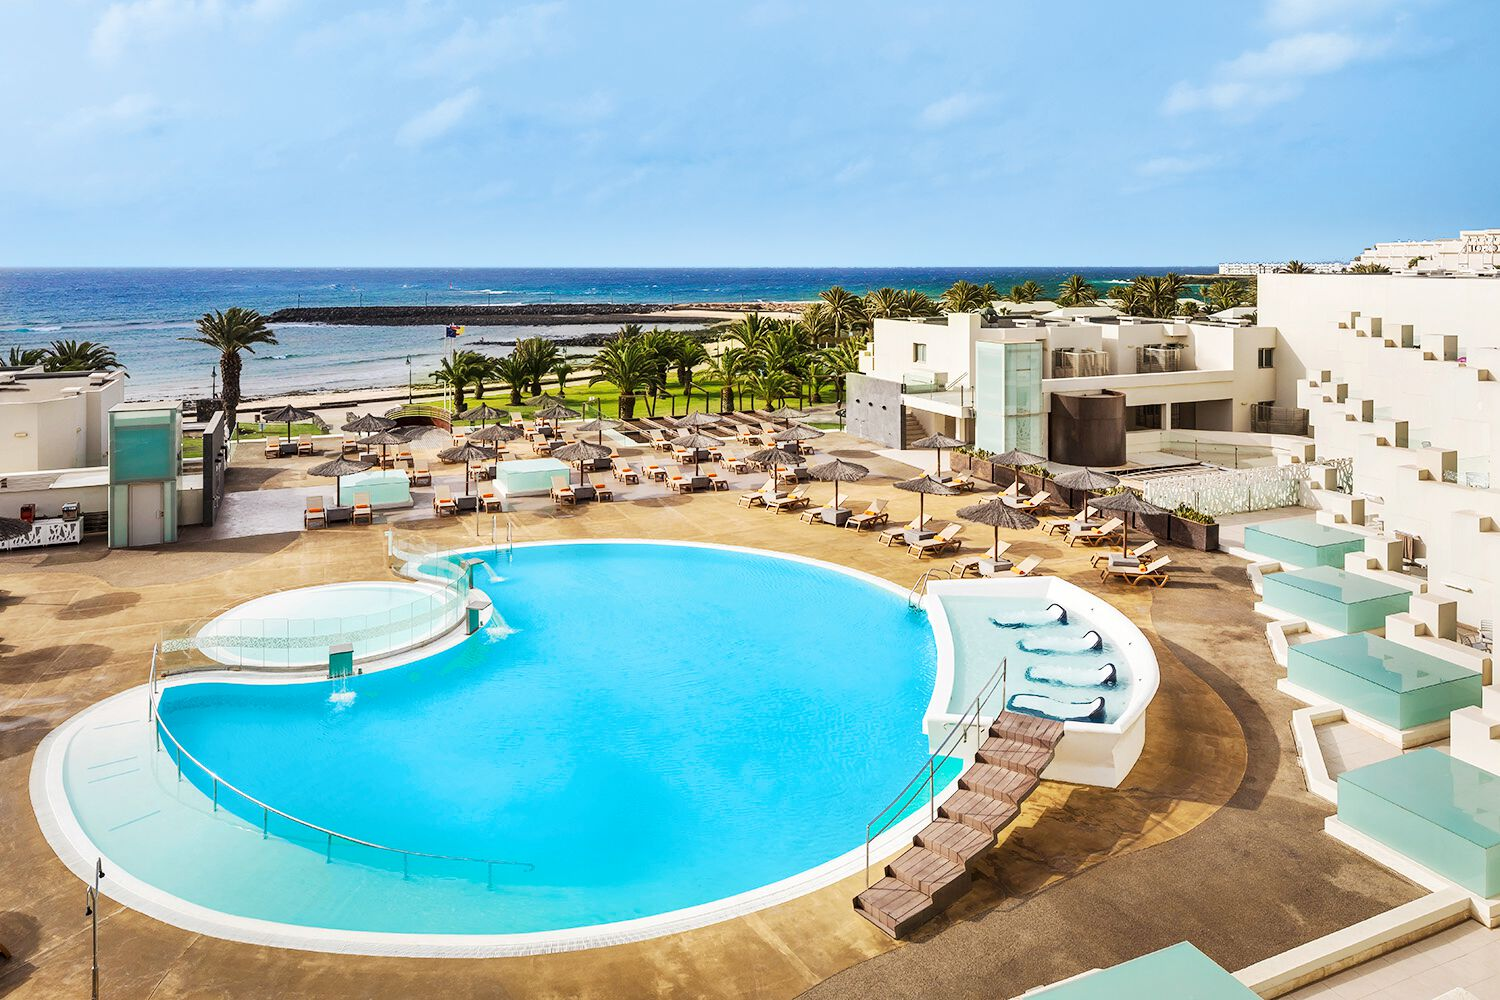 Séjour Lanzarote - HD Beach Resort - 4*